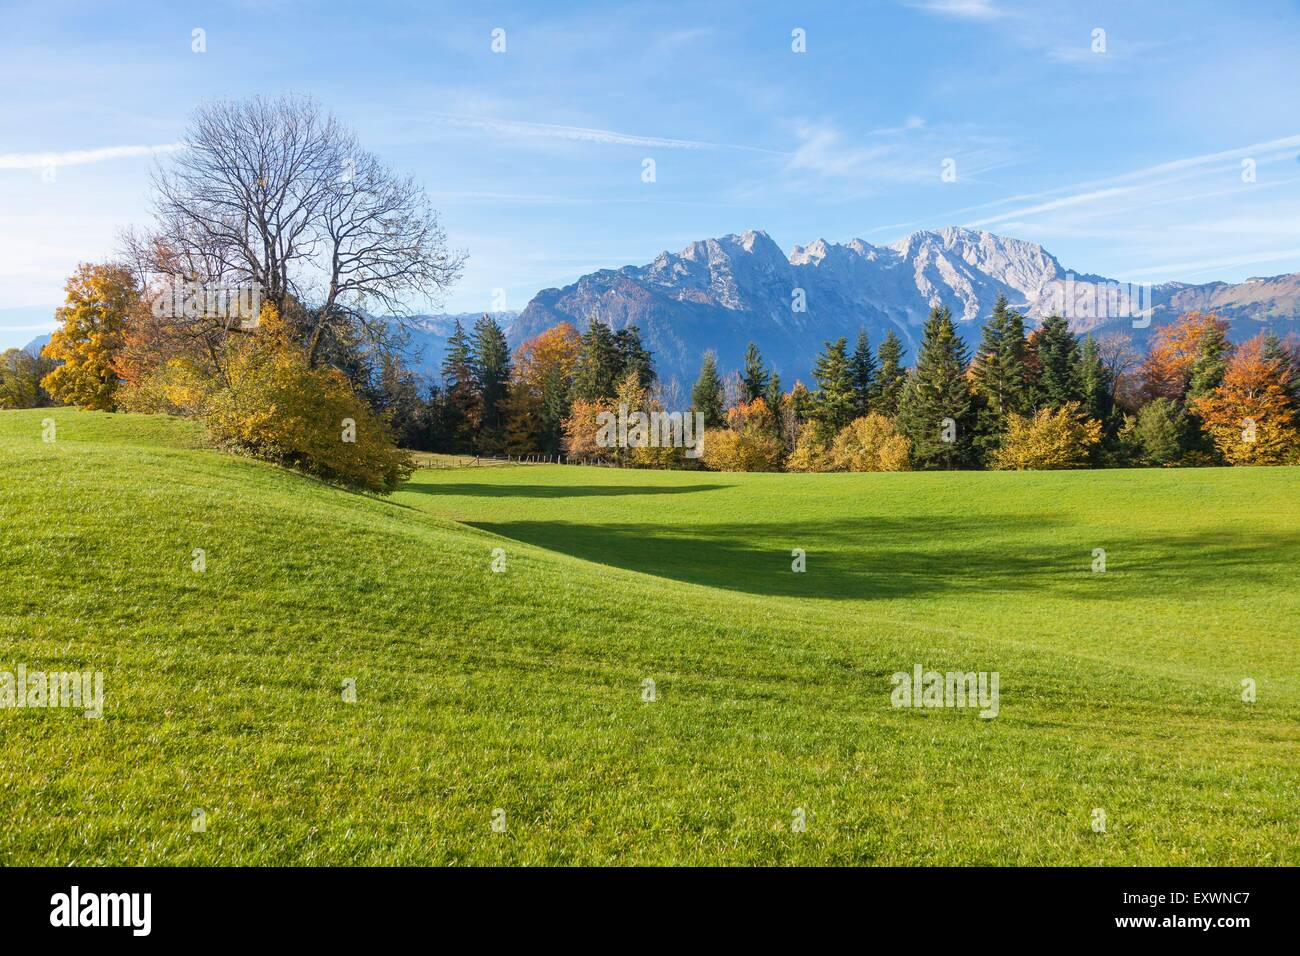 Salzachtal and Hoher Goell, Berchtesgaden Alps, Austria, Europe Stock Photo